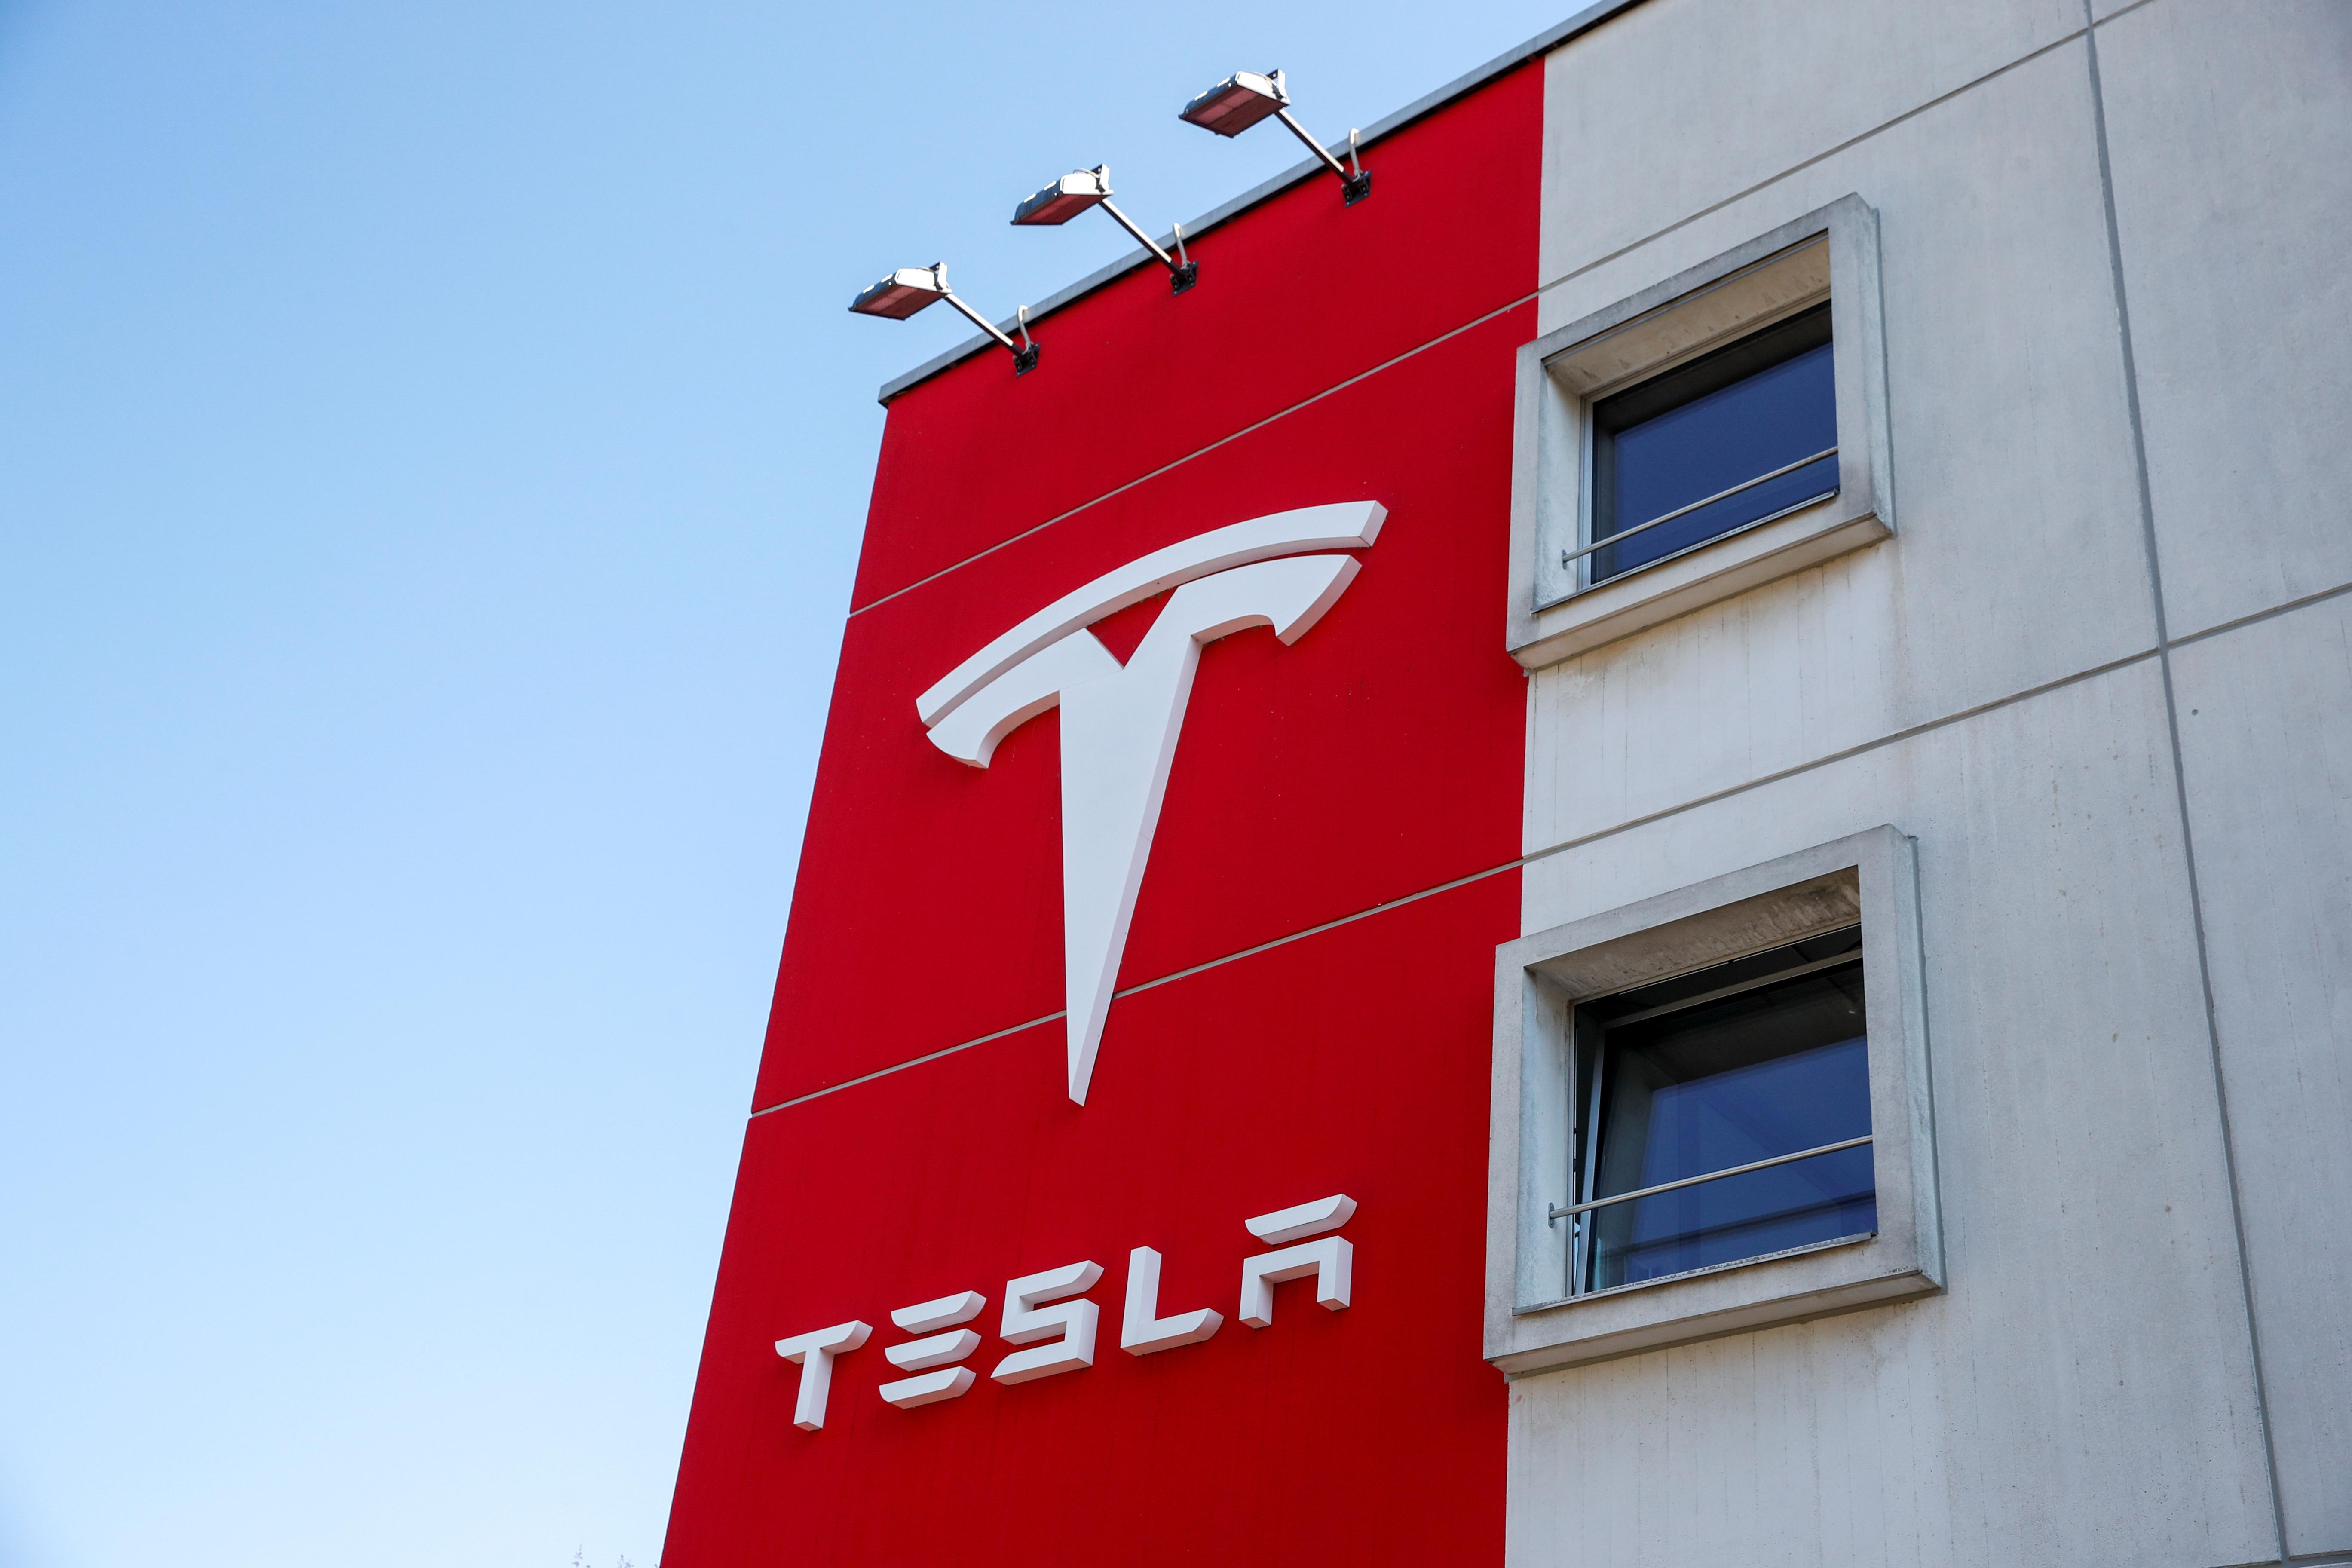 Tesla tests the circuits for German energy market push